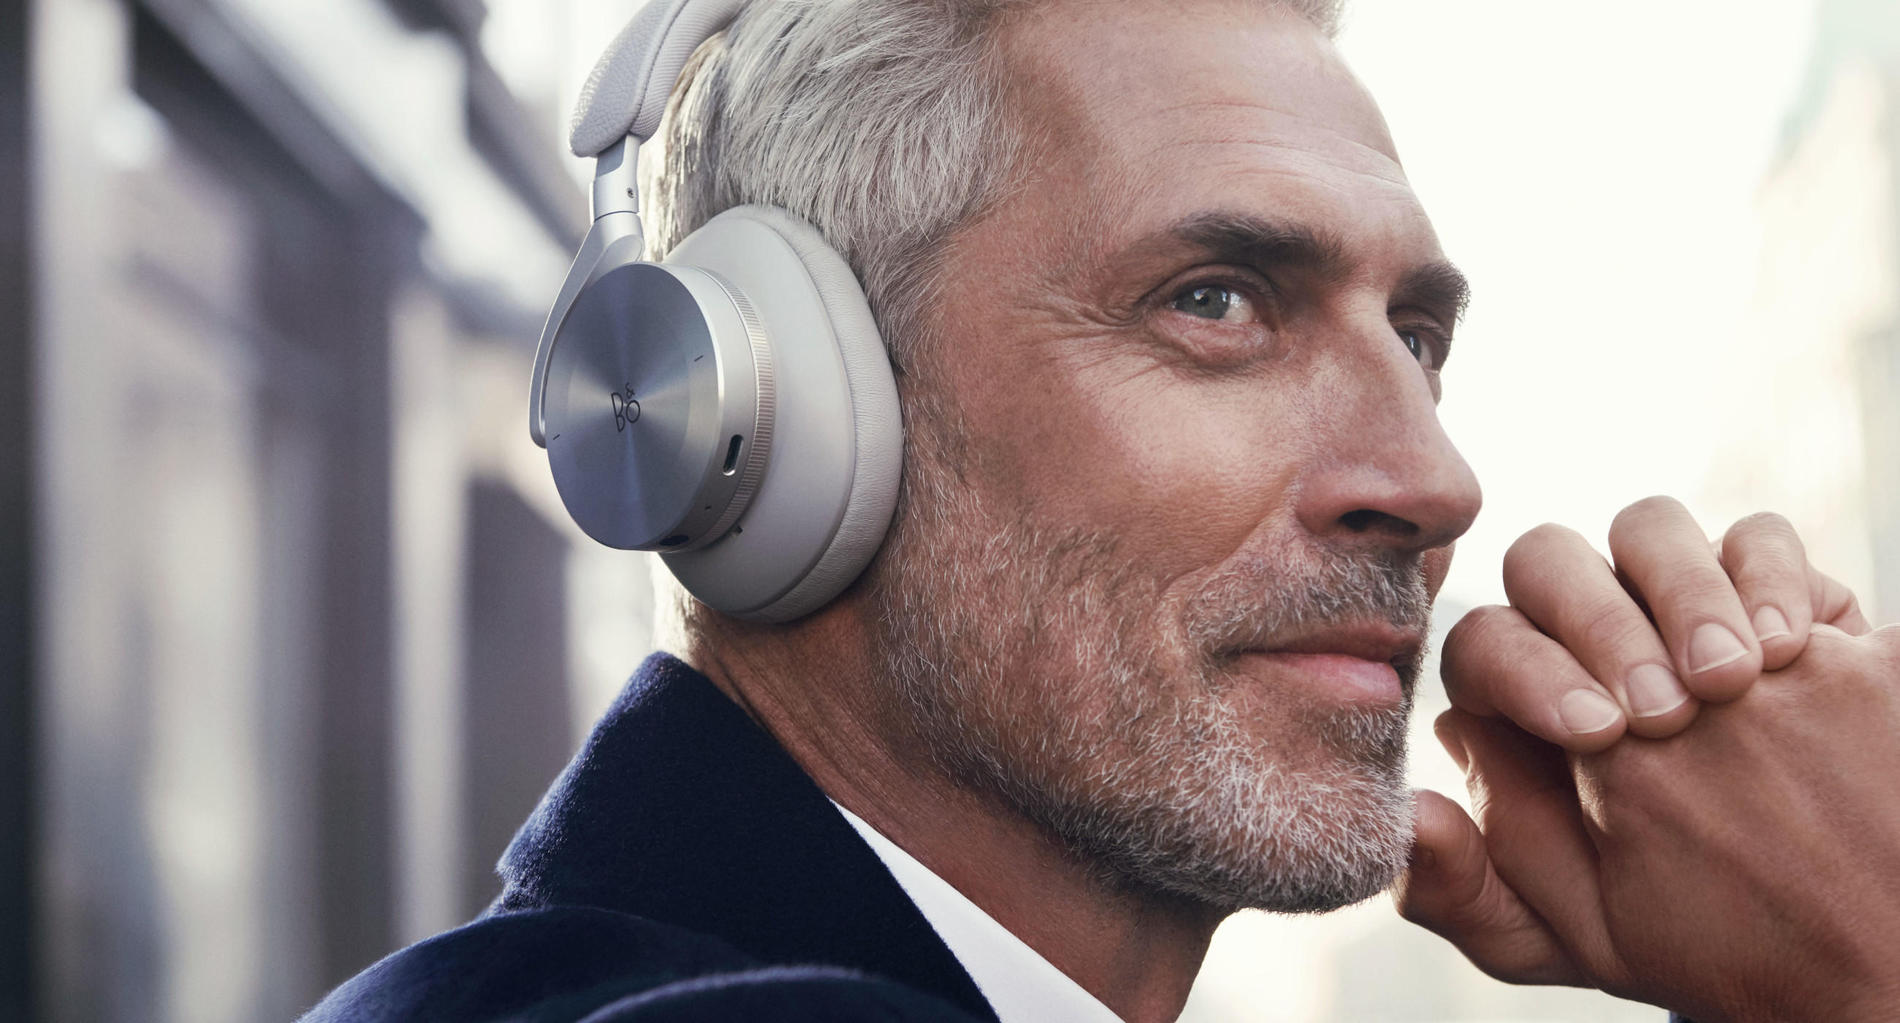 Beoplay H95 Auriculares con ANC adaptable